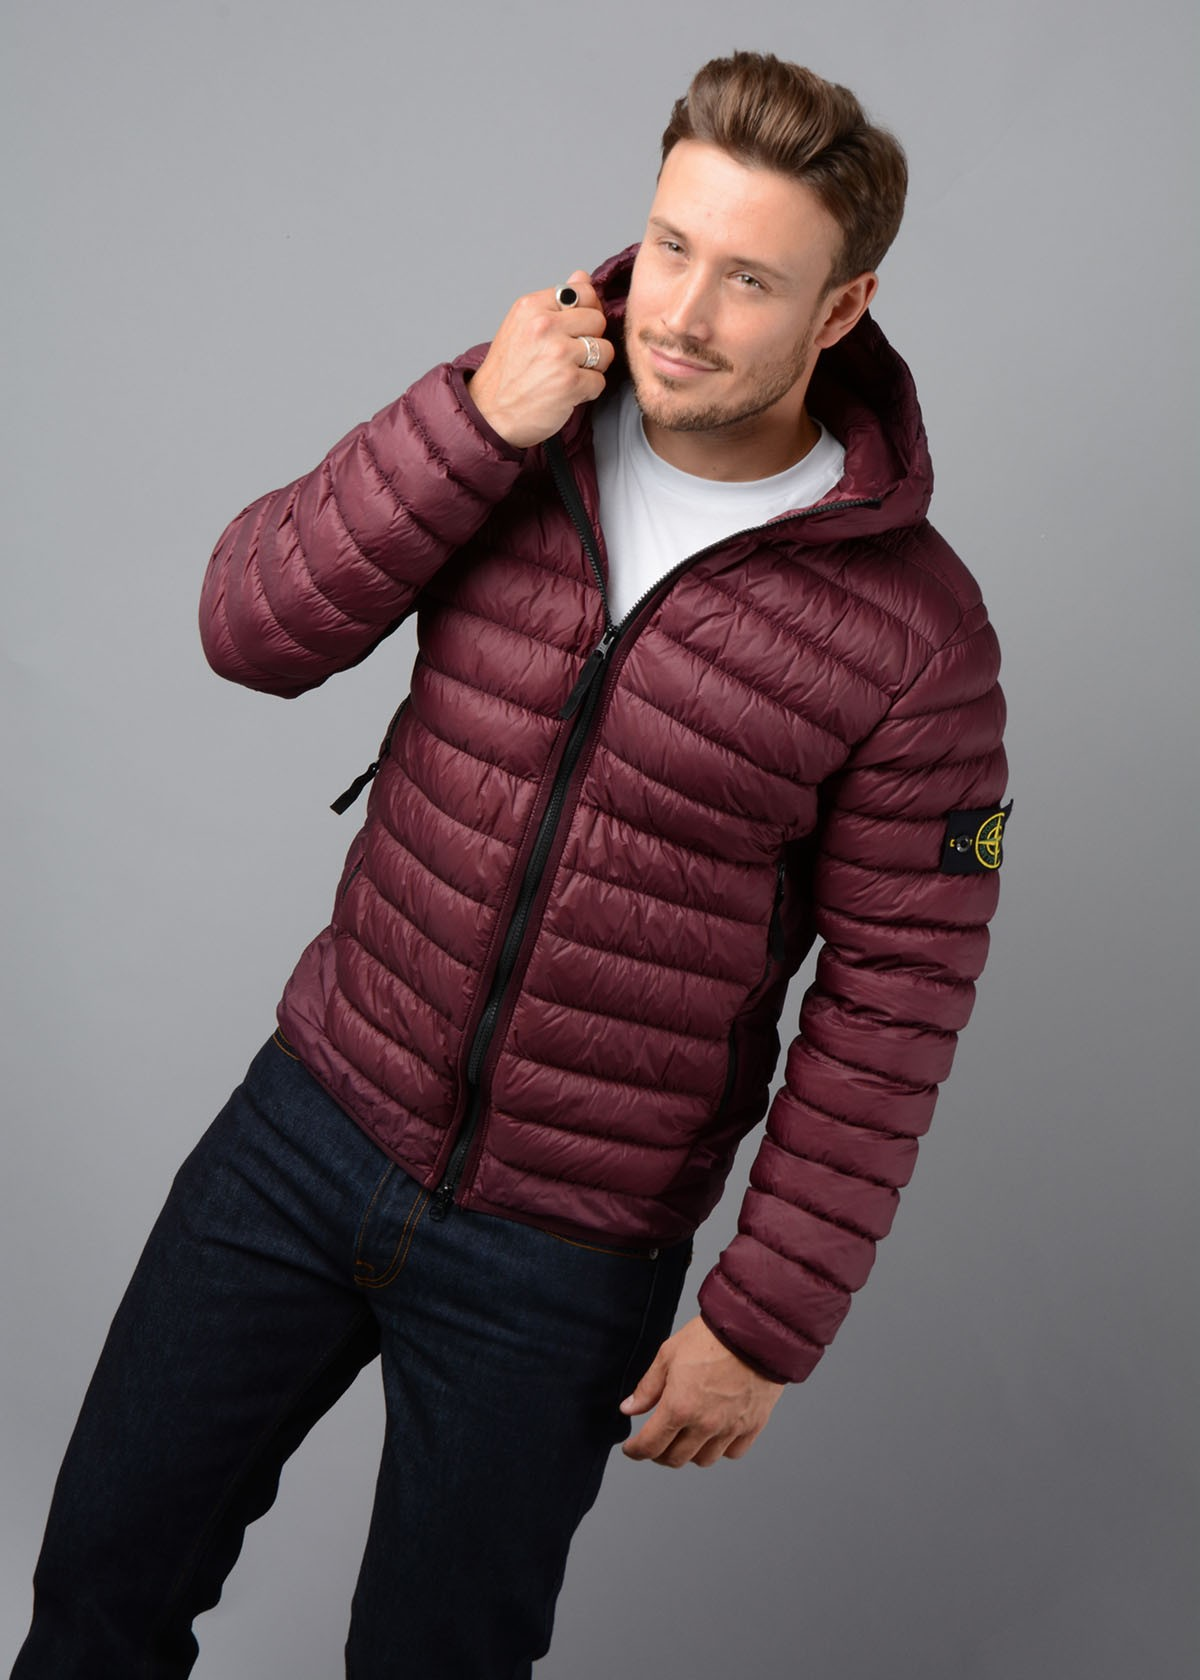 half off 100% authentic reliable quality Stone Island Garment Dyed Micro Down Jacket Burgundy - My Outfit